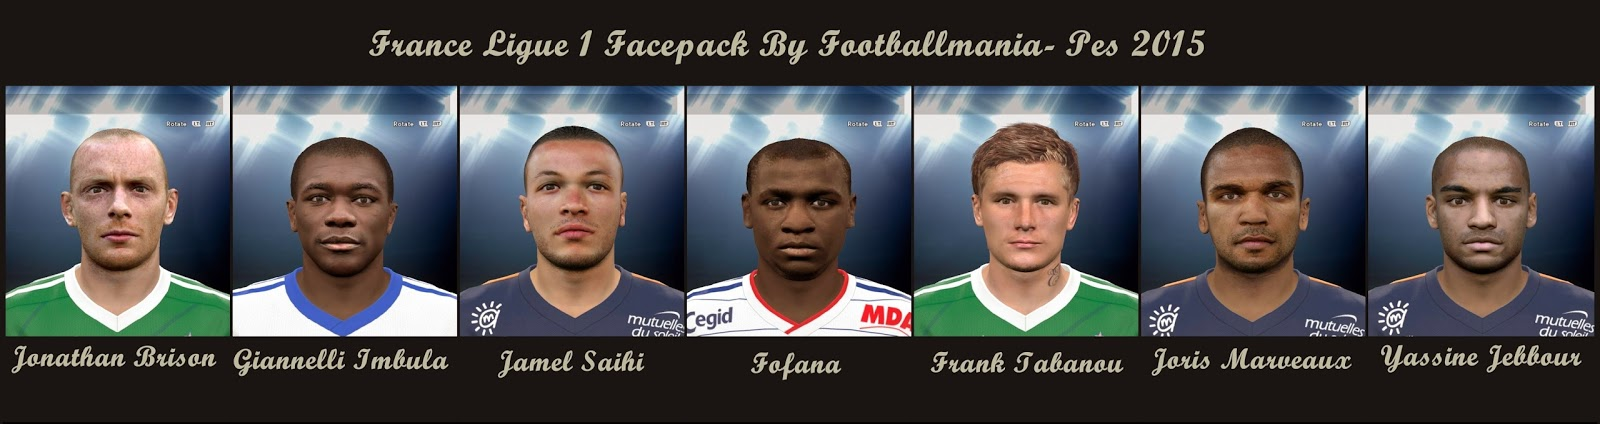 PES 2015 France Ligue 1 Facepack by FootballMania